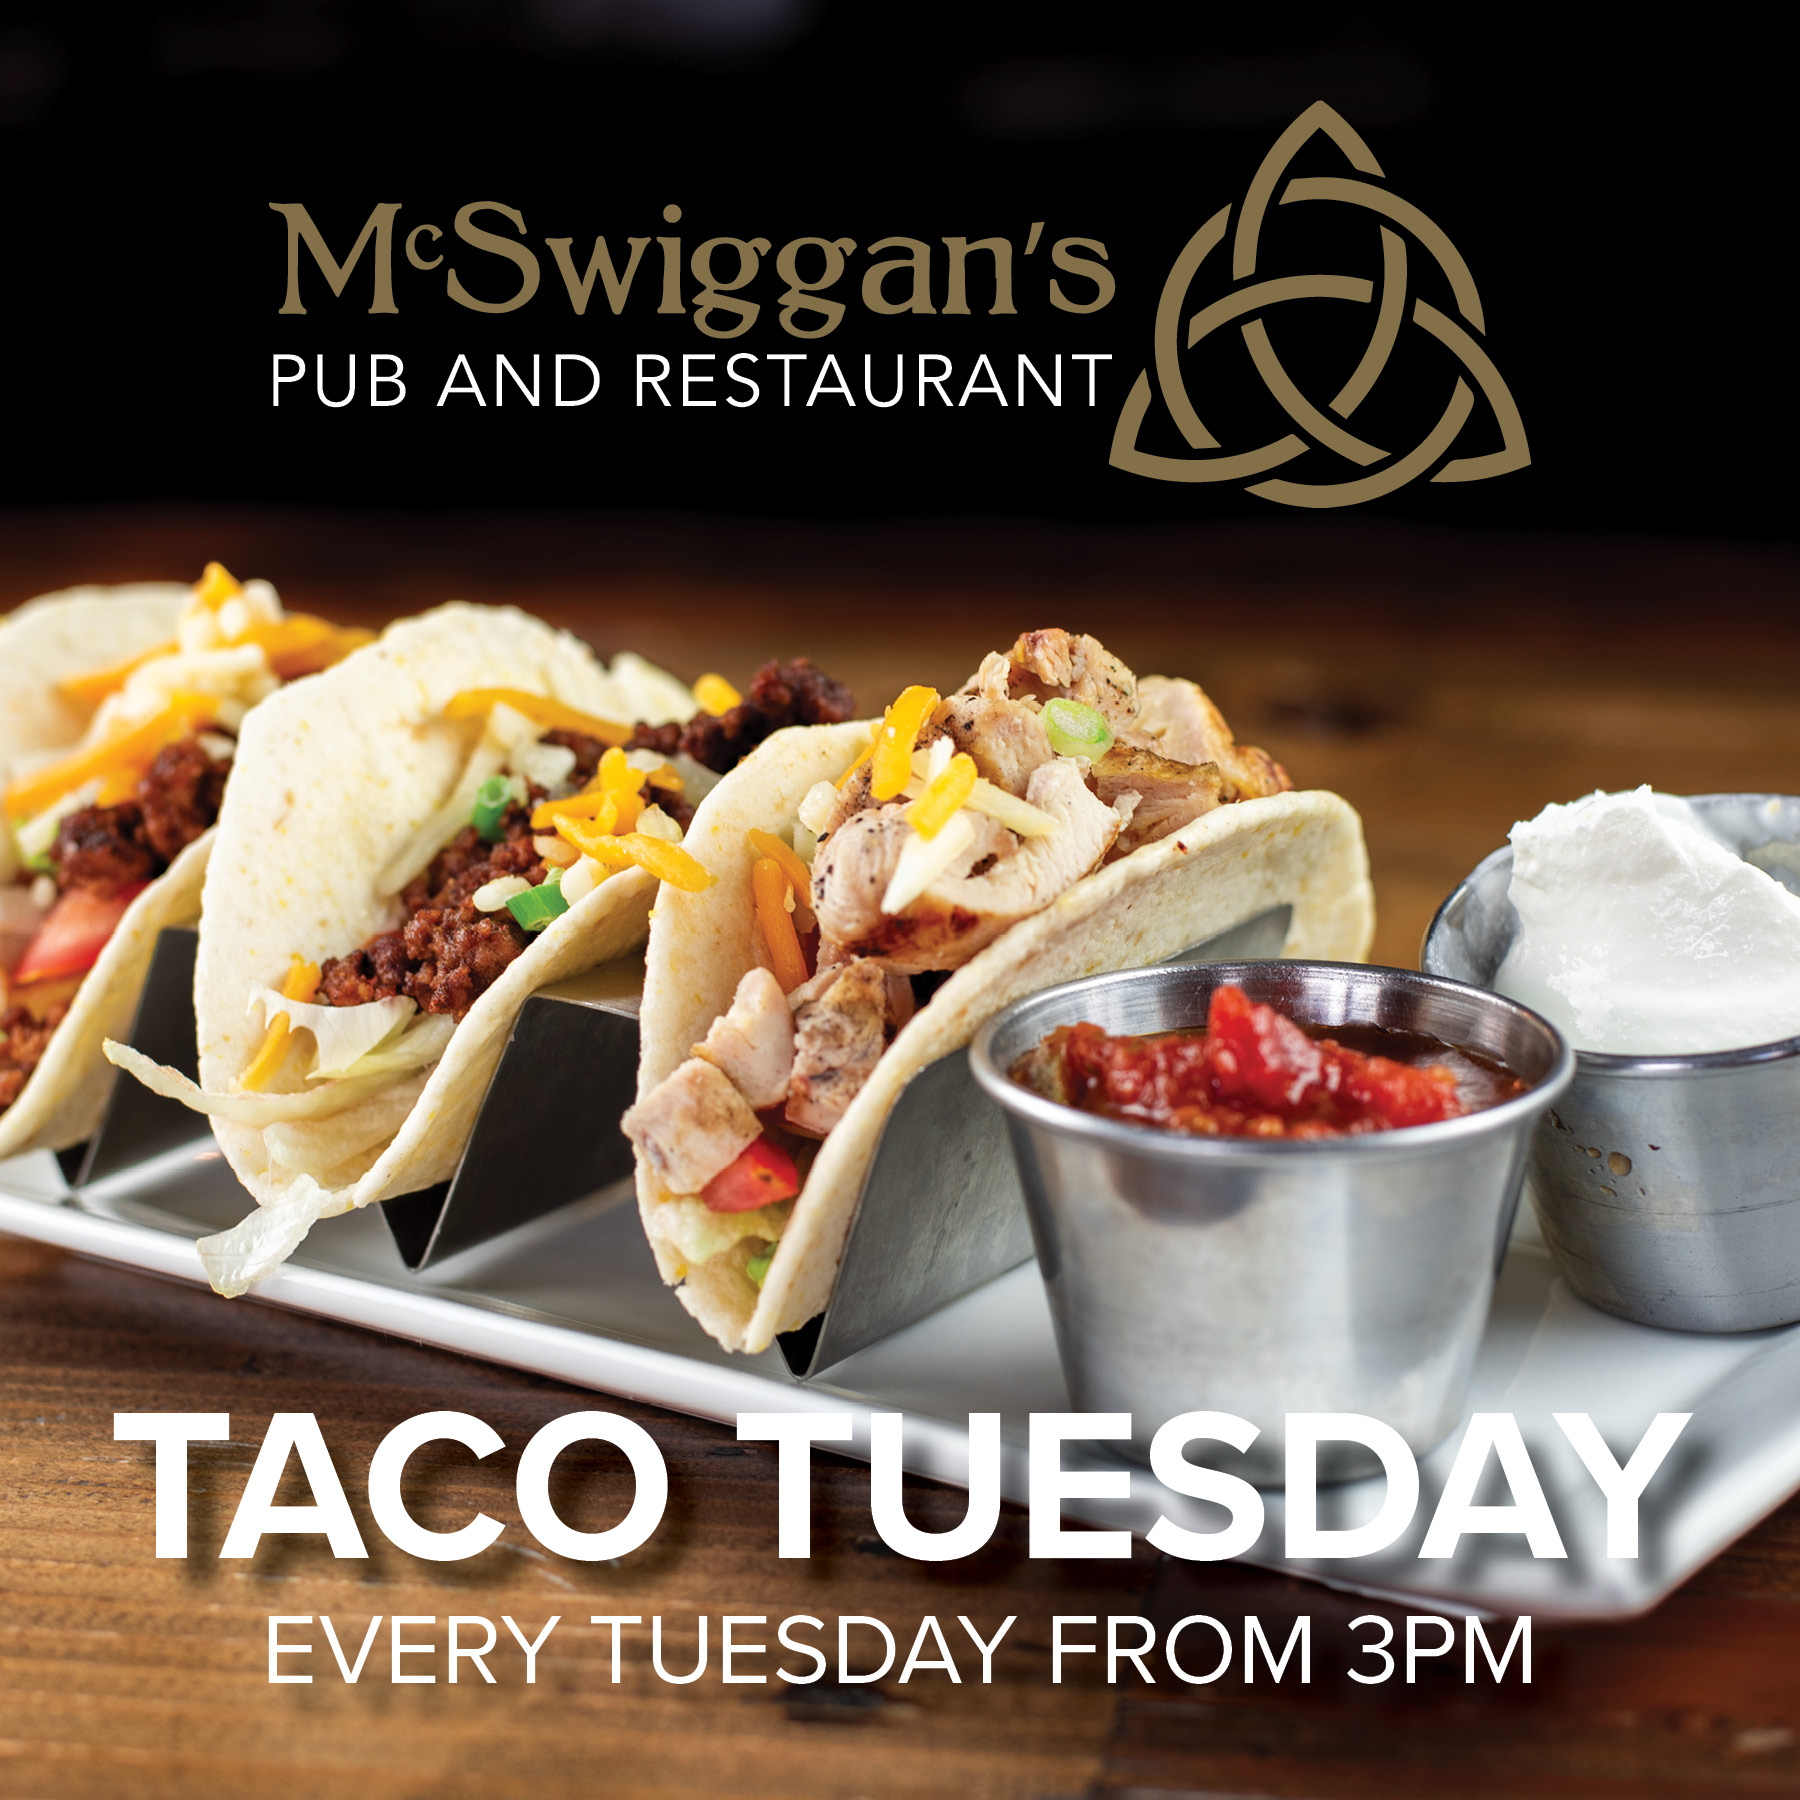 Taco Tuesday Every Tuesday from 3 pm